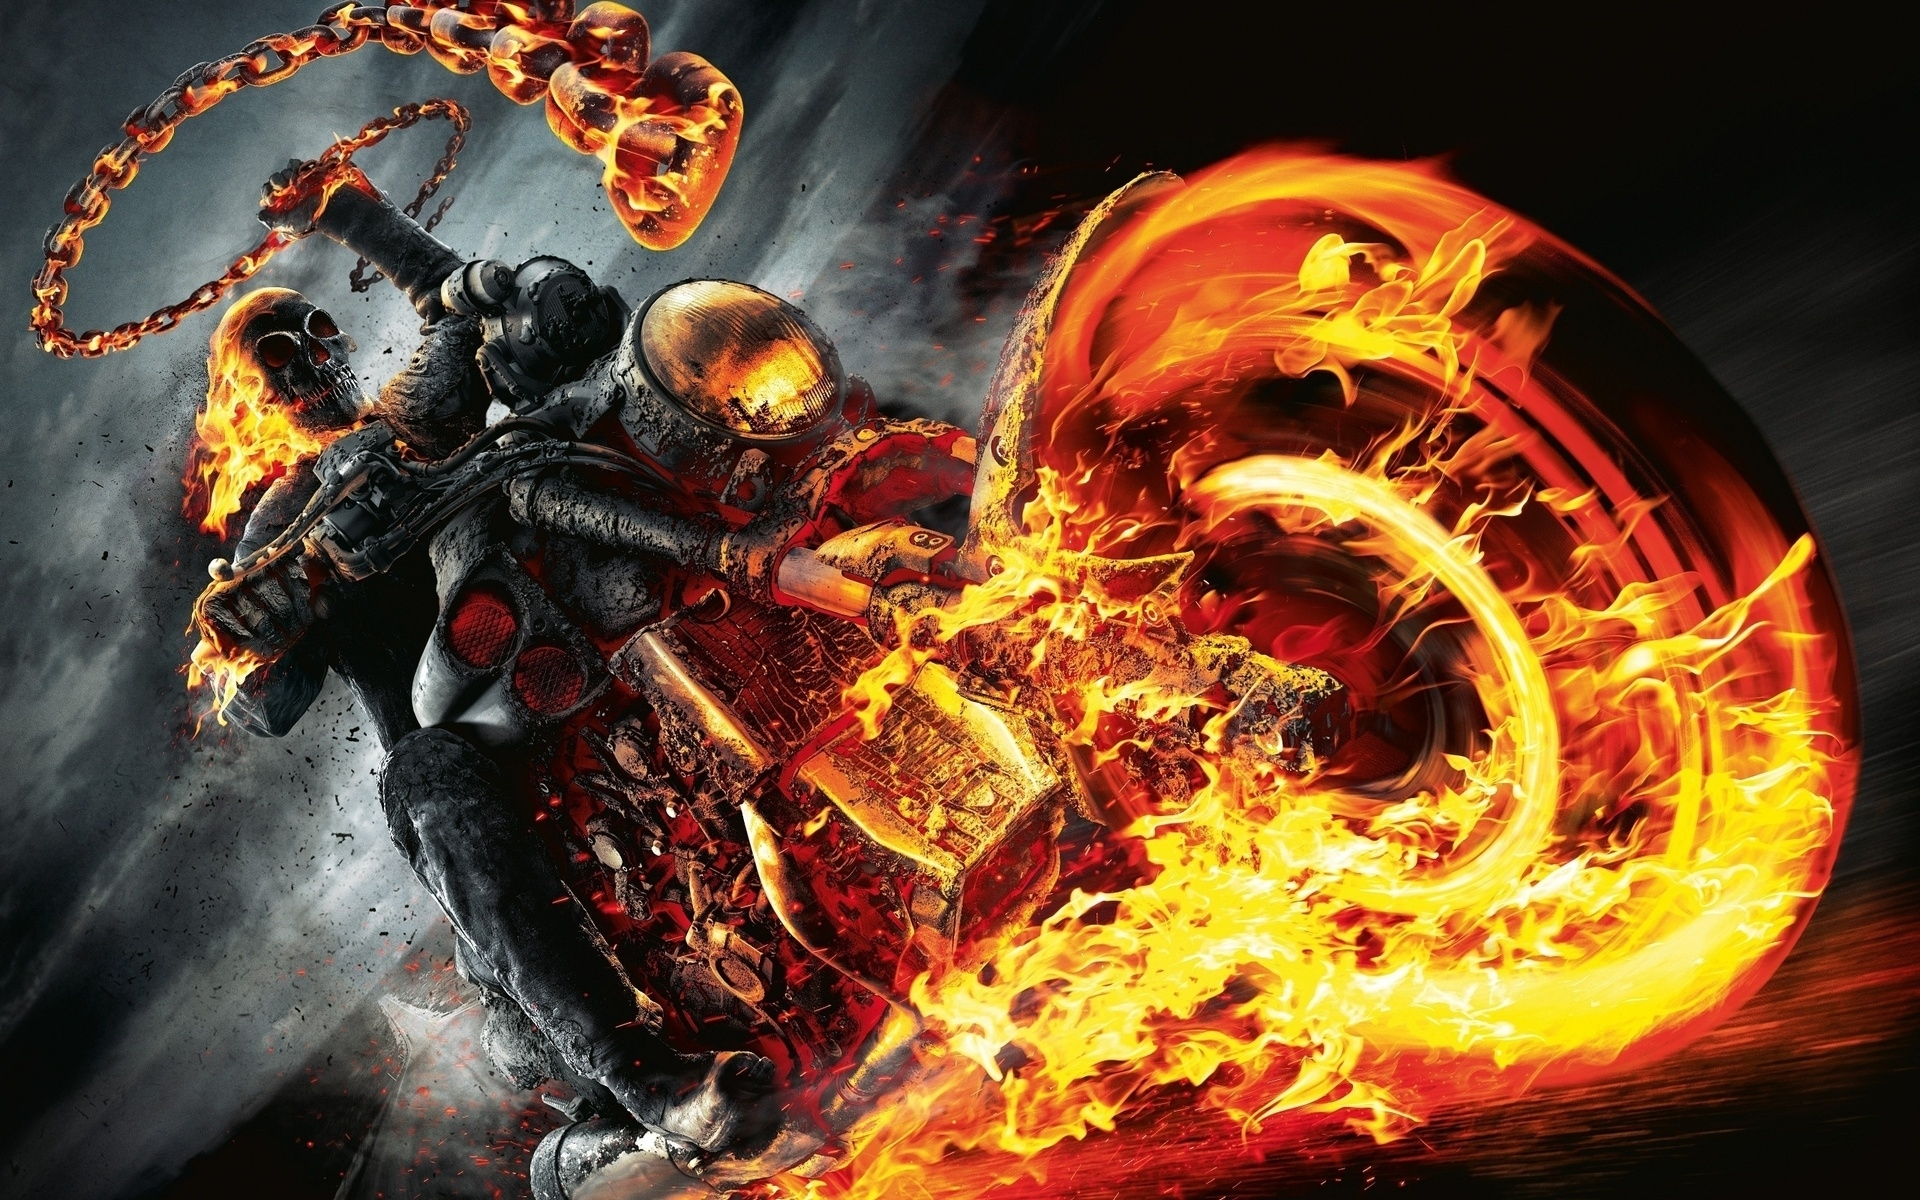 10 Best Ghost Rider Spirit Of Vengeance Wallpaper 3D FULL HD 1920×1080 For PC Background